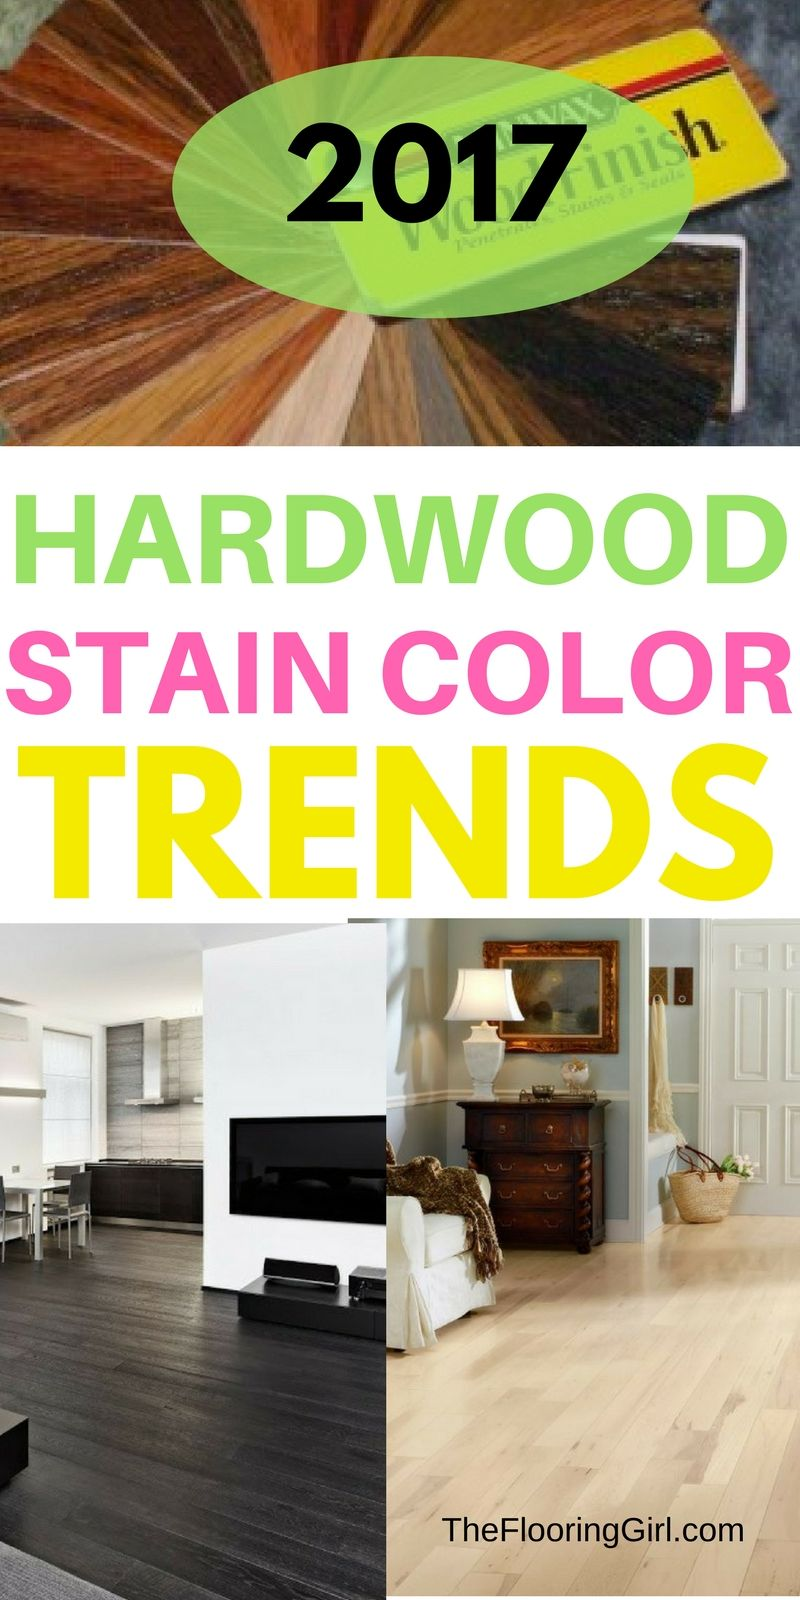 Hardwood Flooring Stain Color Trends 2019 More From The Flooring